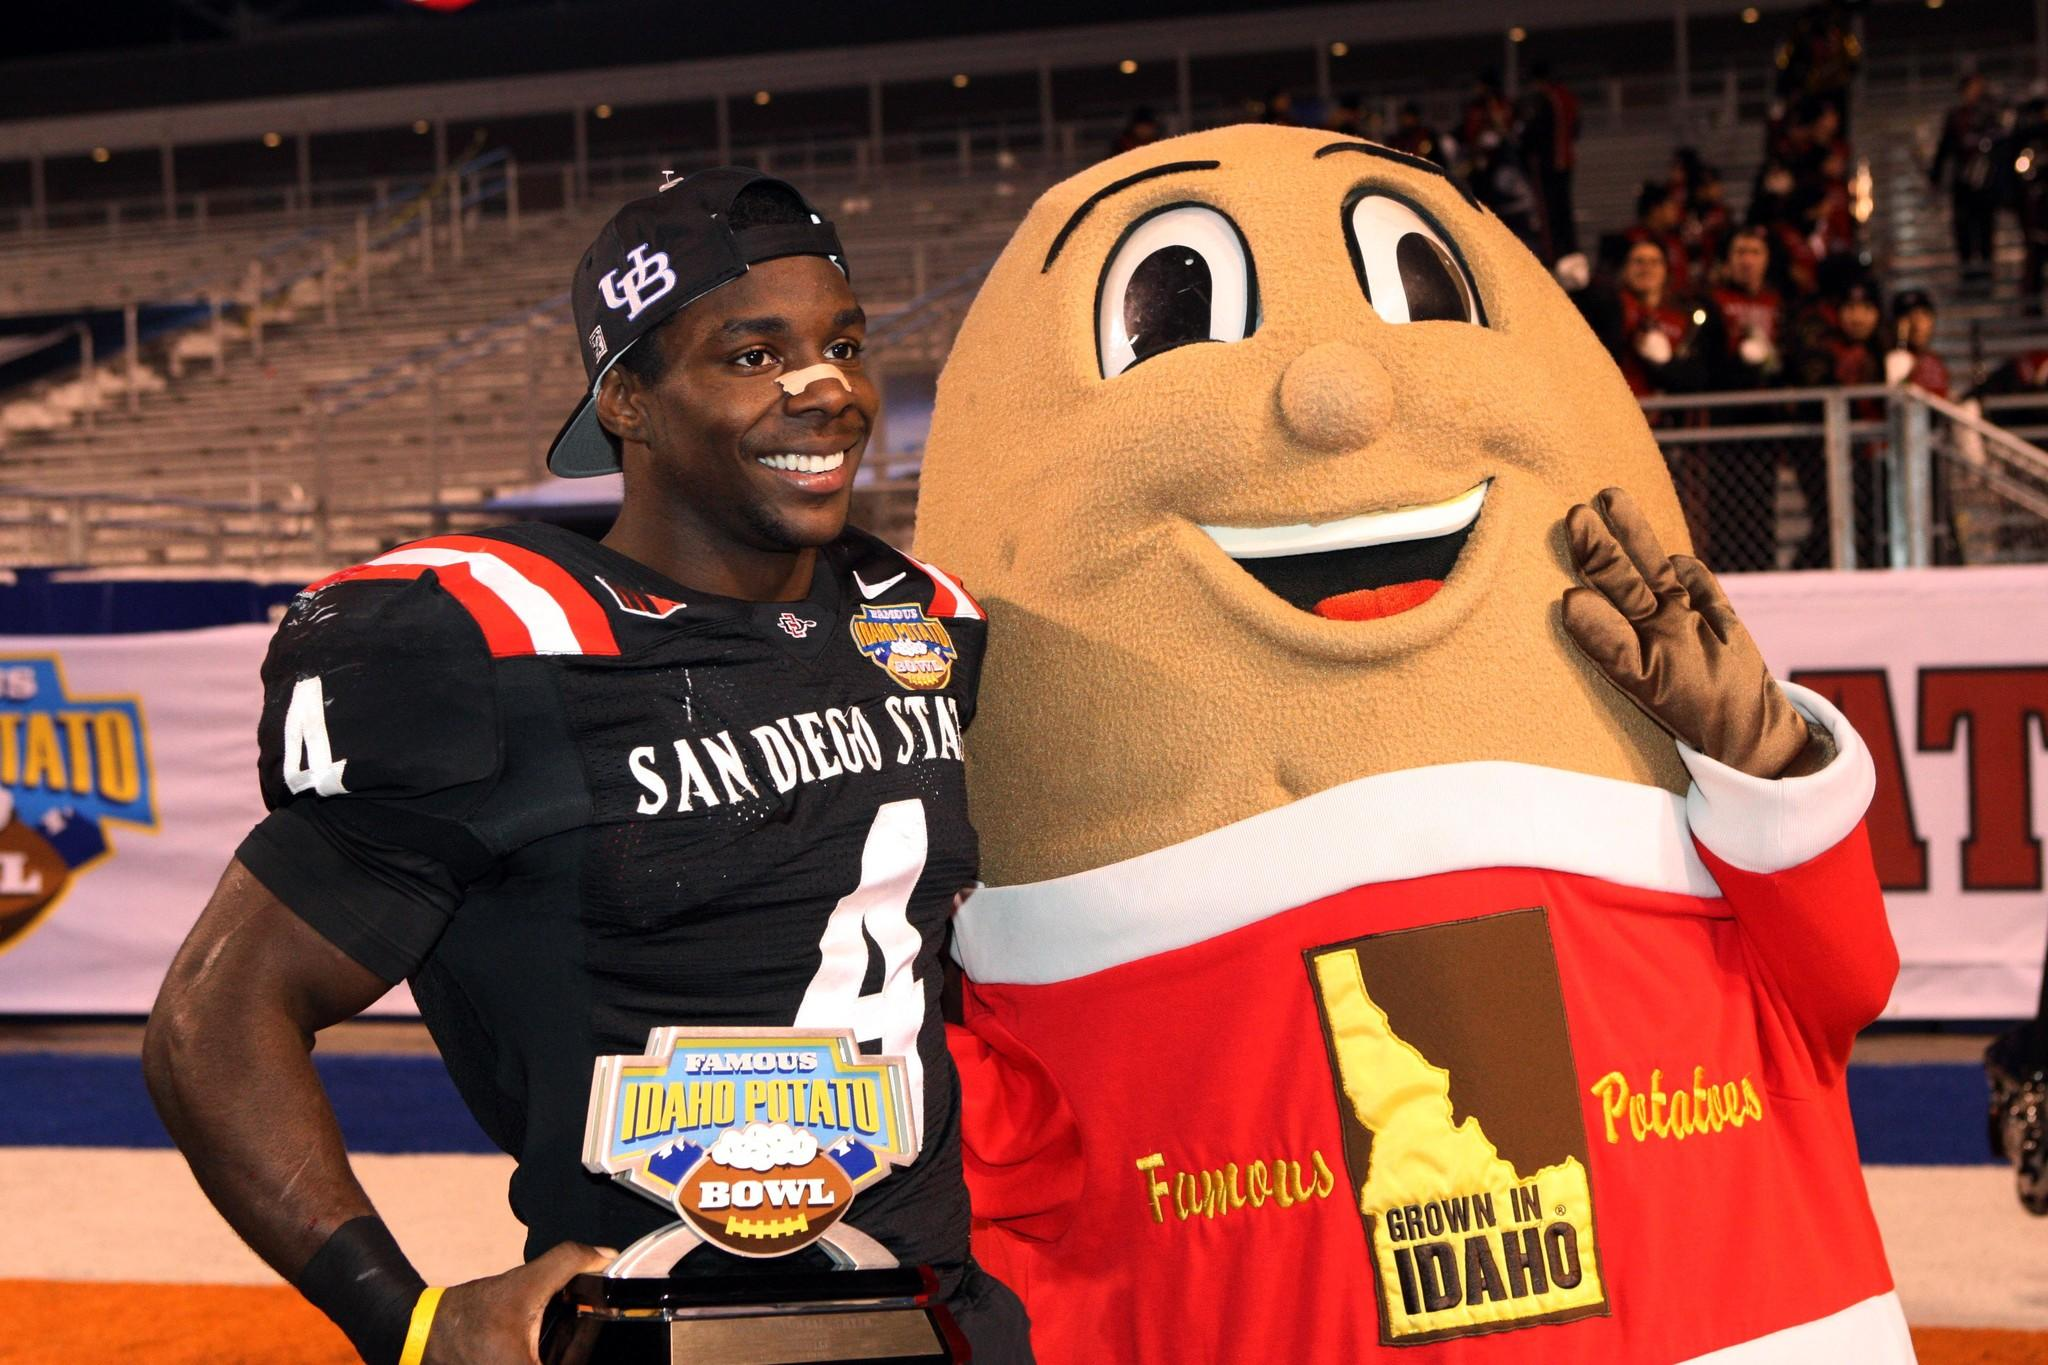 San Diego State running back Adam Muema holds the game MVP award after the Idaho Potato Bowl against the Buffalo Bulls at Bronco Stadium.